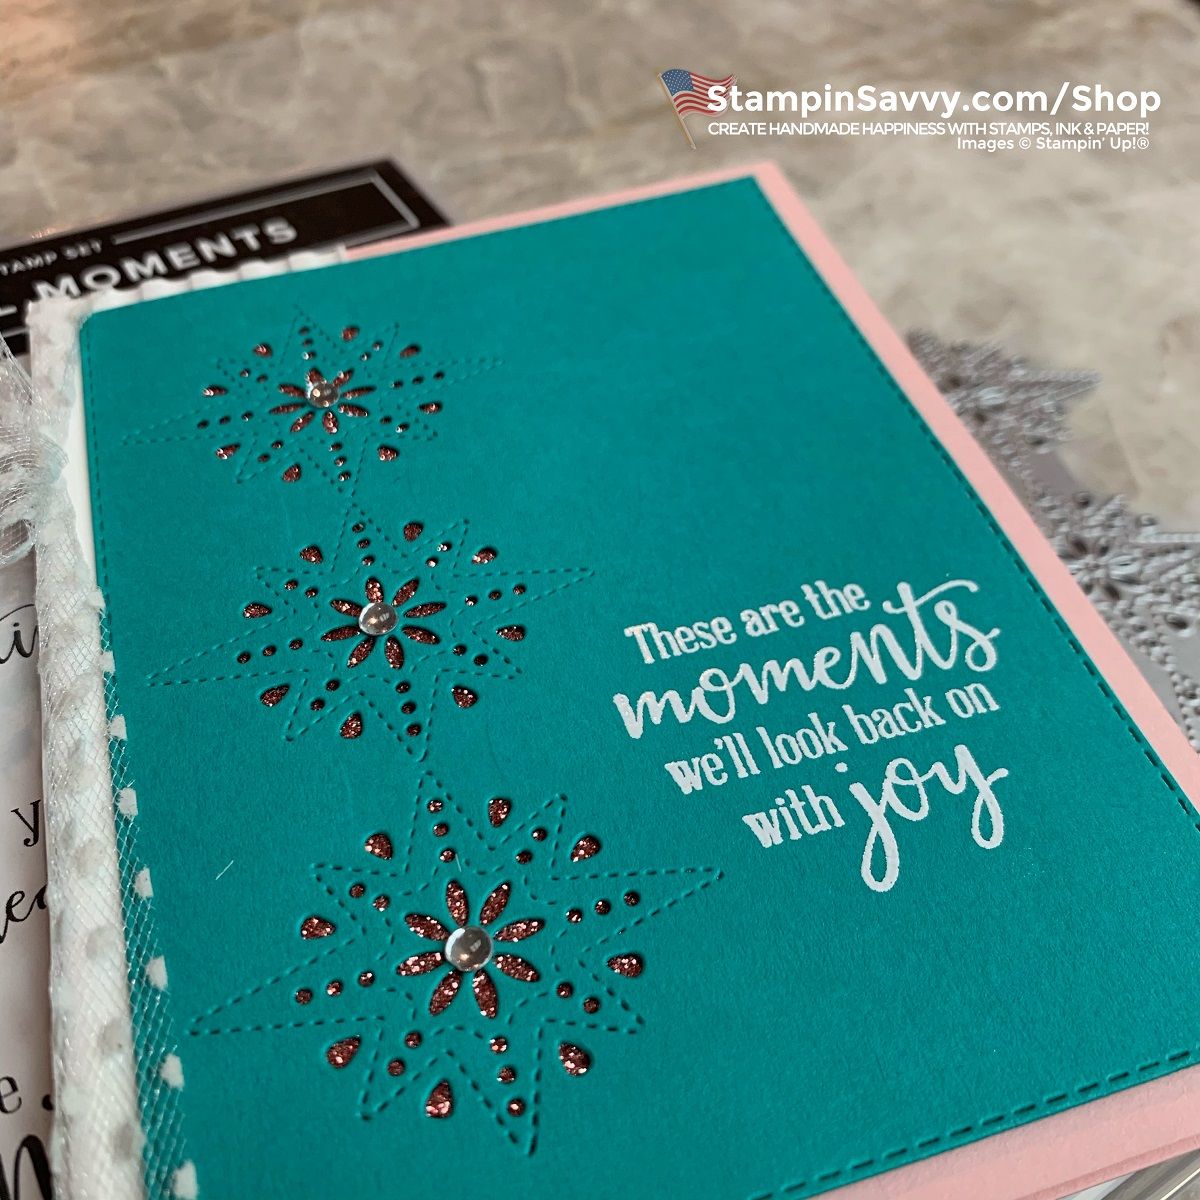 STITCHED-BRIGHTLY-DIES-PEACEFUL-MOMENTS-CARD-IDEAS-STAMPIN-SAVVY-TAMMY-BEARD-STAMPIN-UP-1